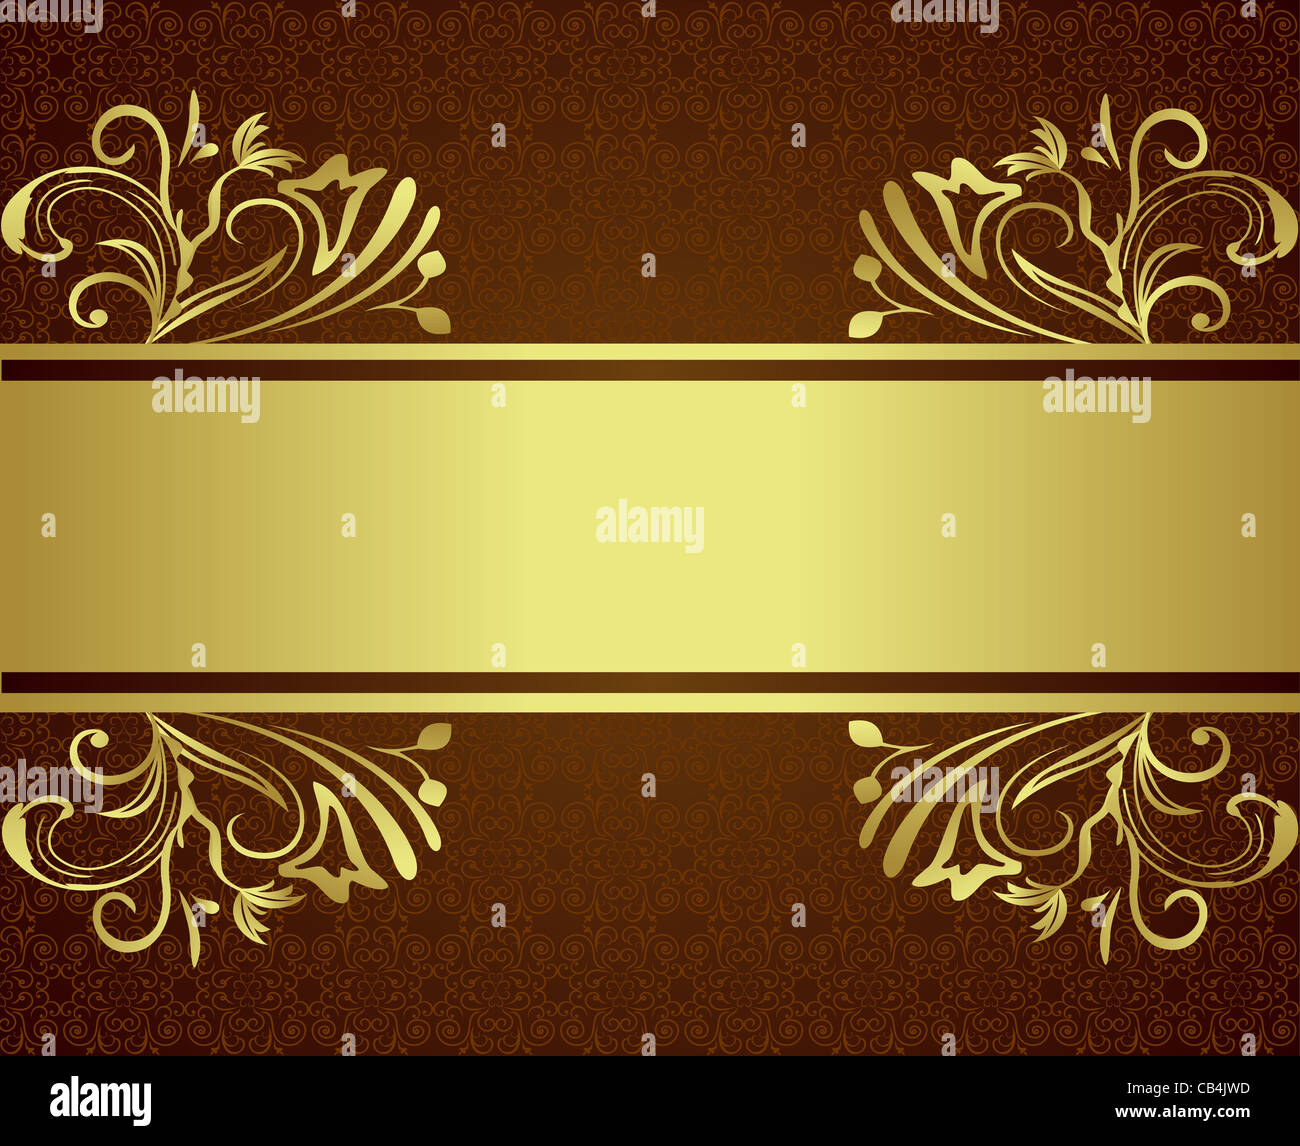 Vector Golden Floral Luxury Background For Design Stock Photo